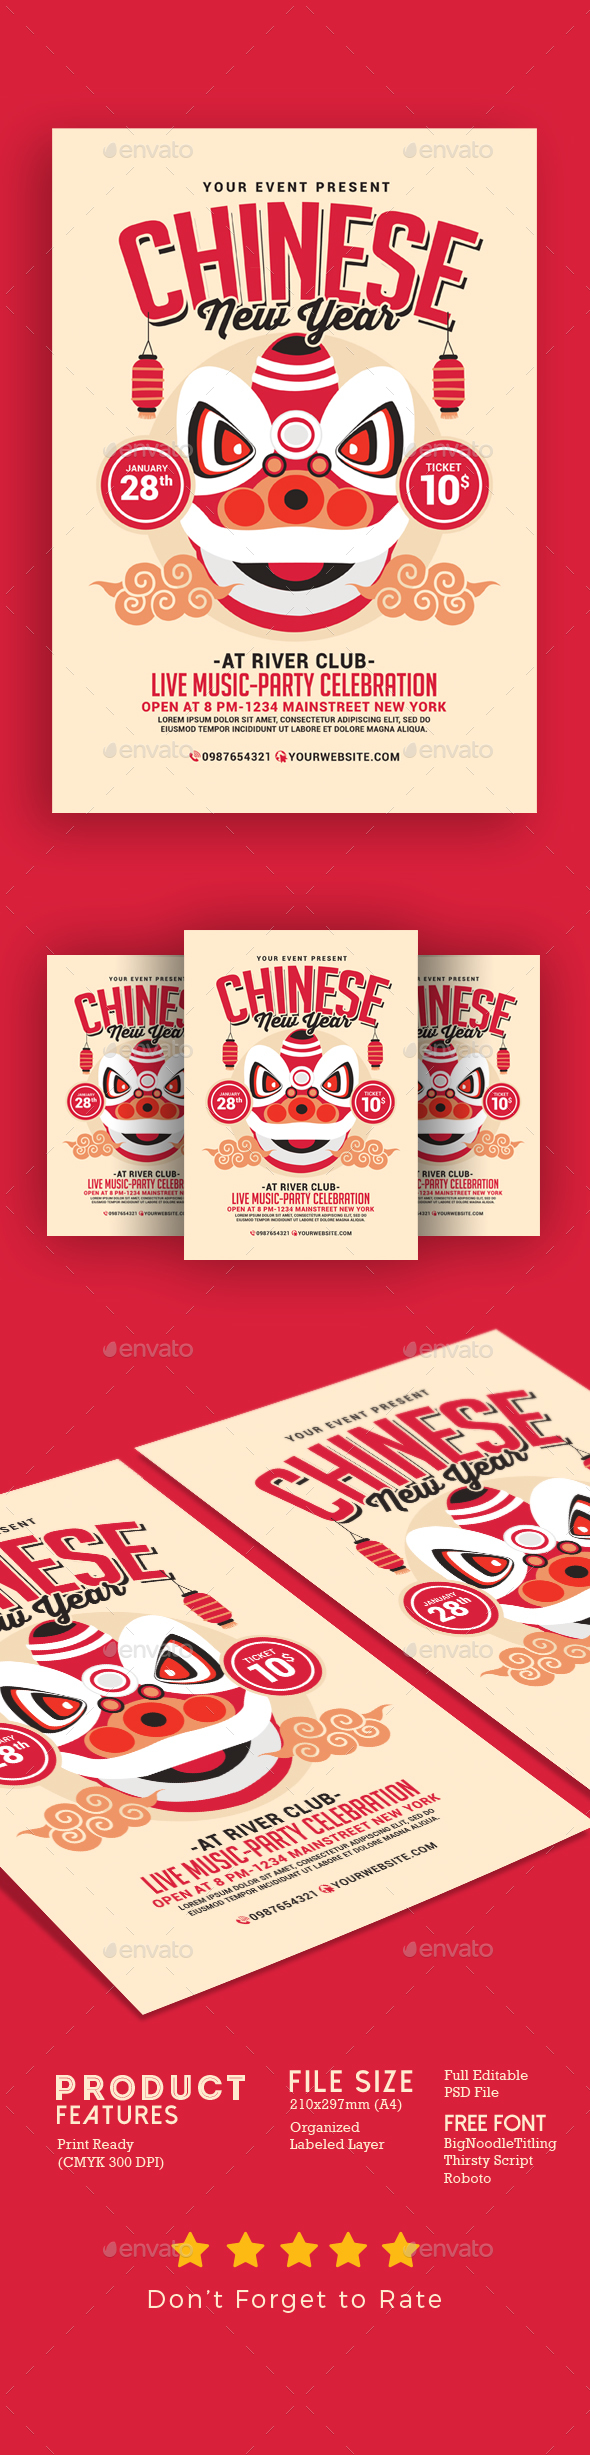 Chinese New Year Flyer 2 - Events Flyers